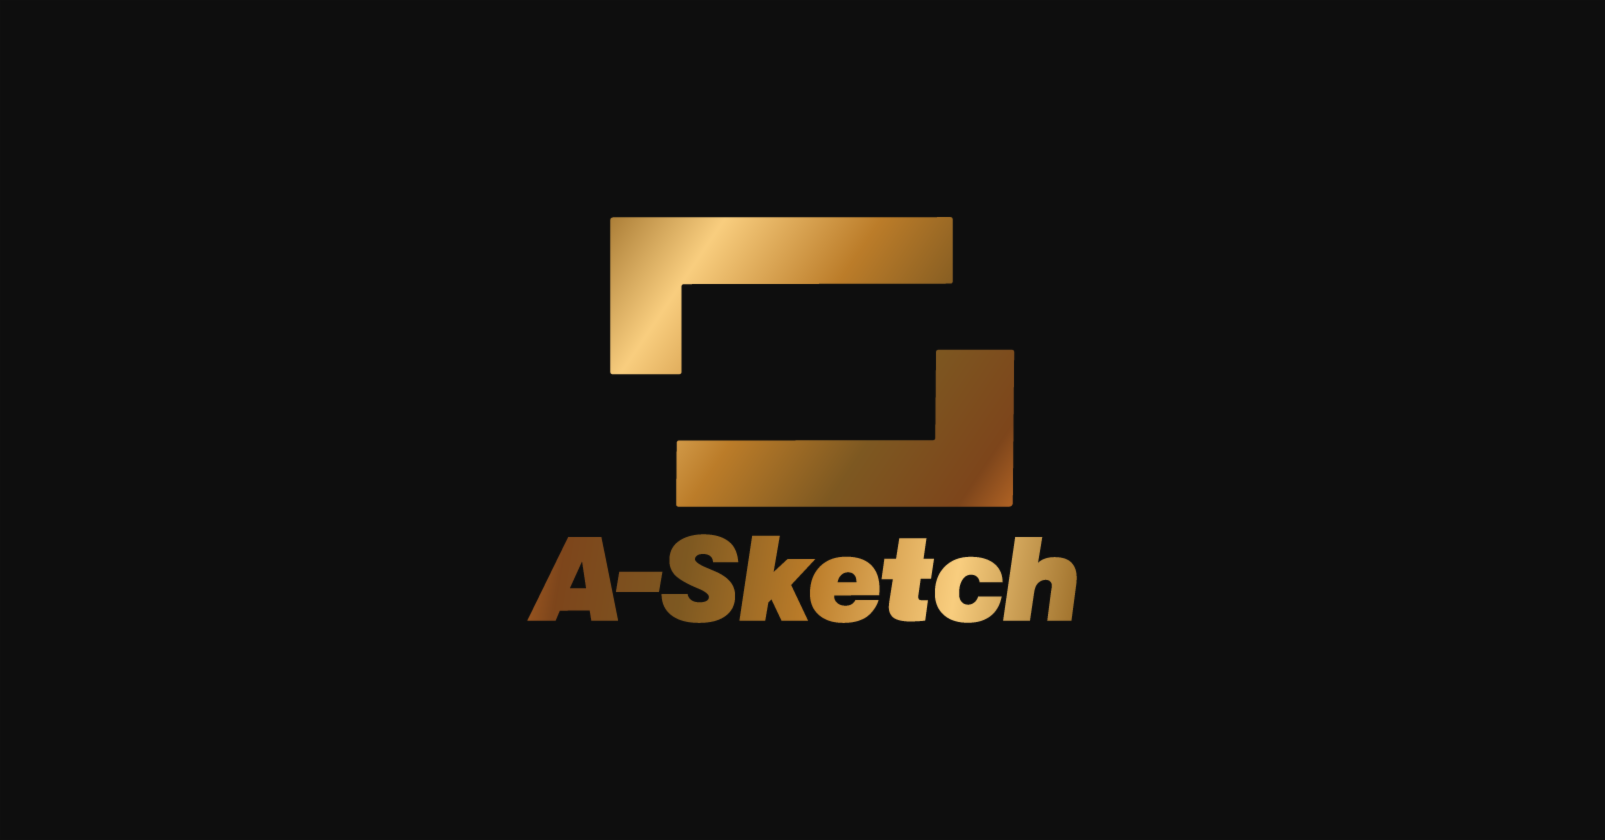 A-Sketch Official Site